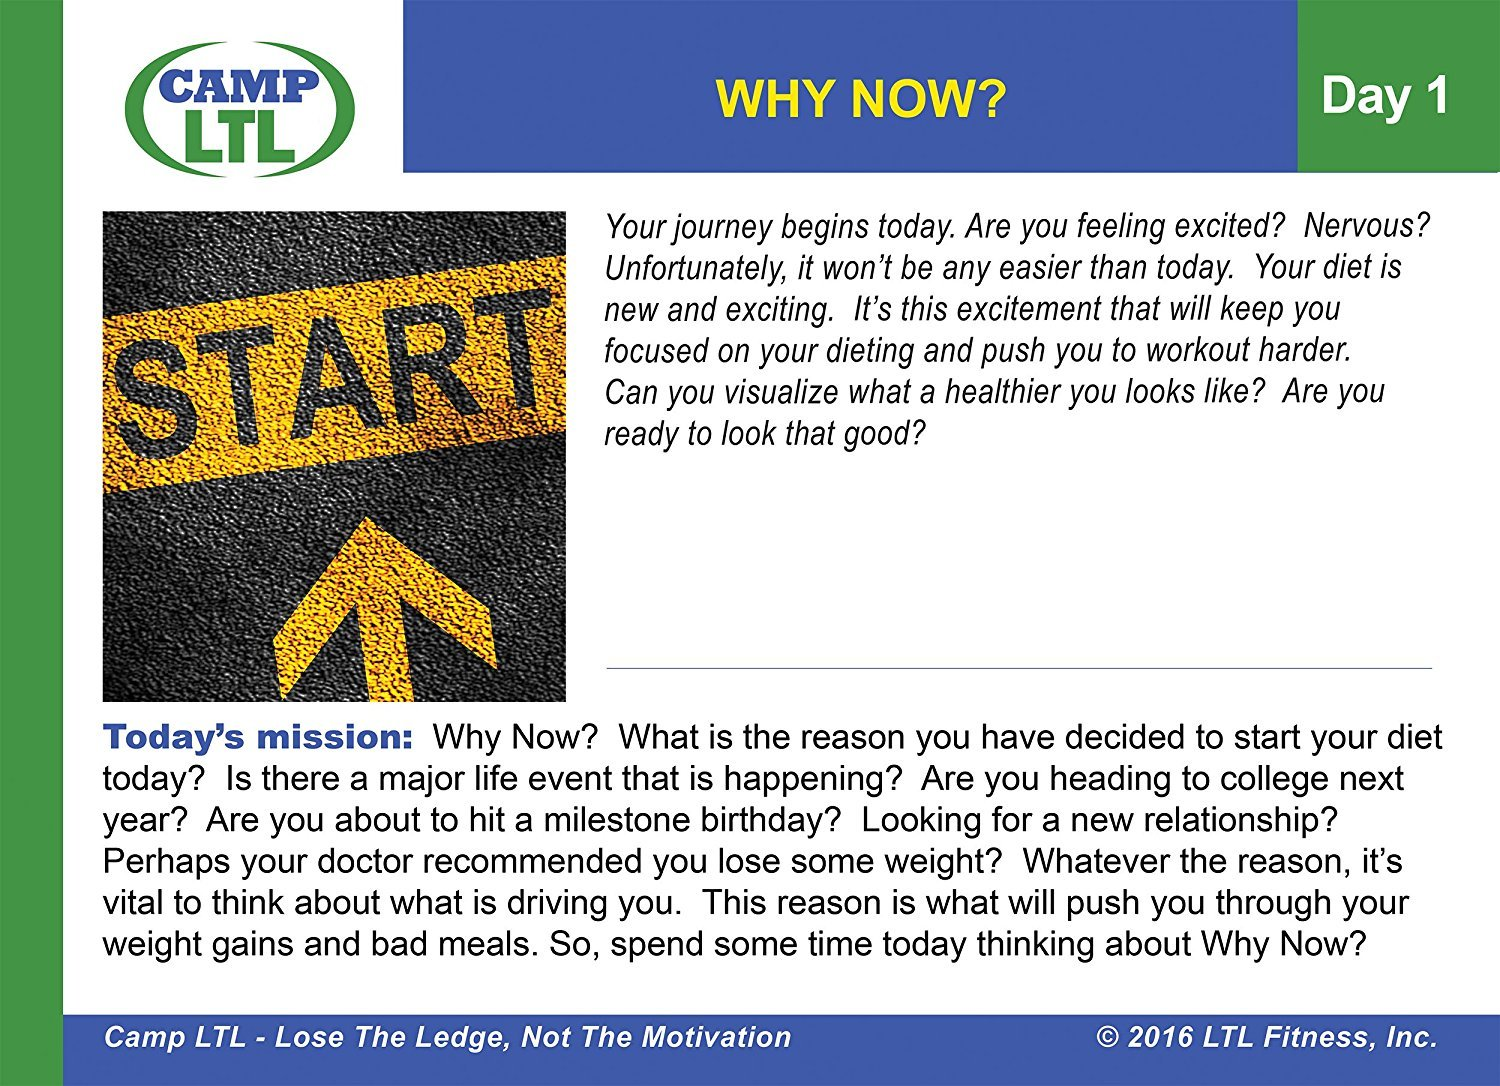 Month 1 LTL Fitness Inc. Camp LTL Daily Weight Loss Motivation Cards